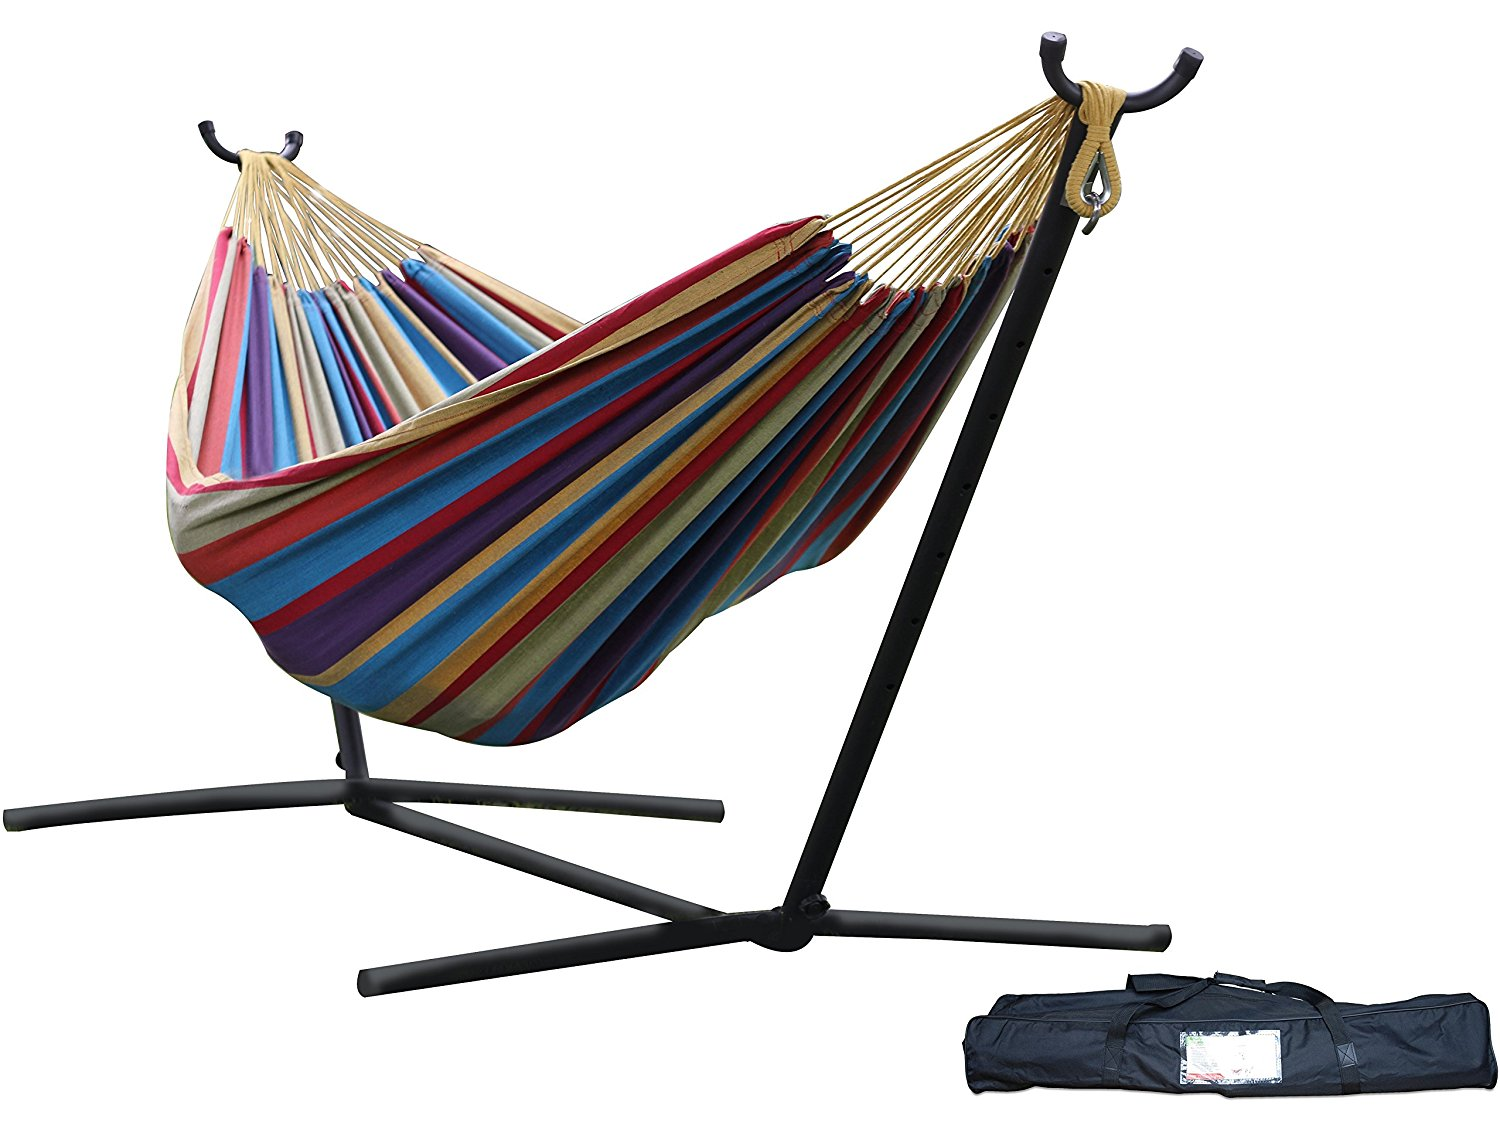 Vivere Double Hammock with Space-Saving Steel S